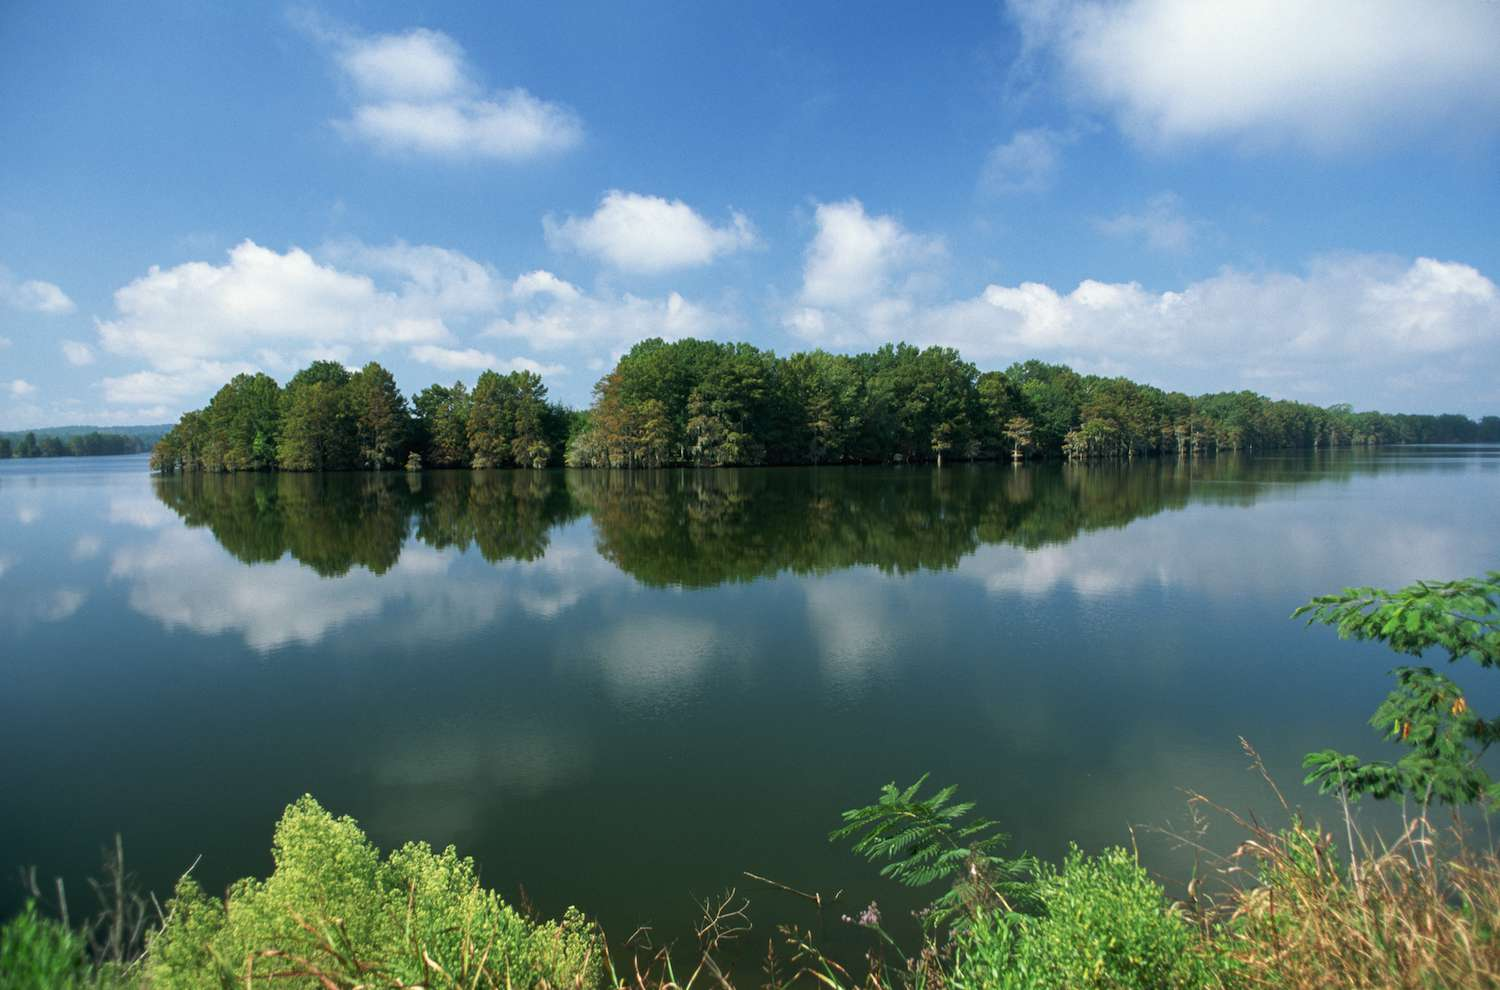 A partly cloudy sky is reflected in the Ouachita River.